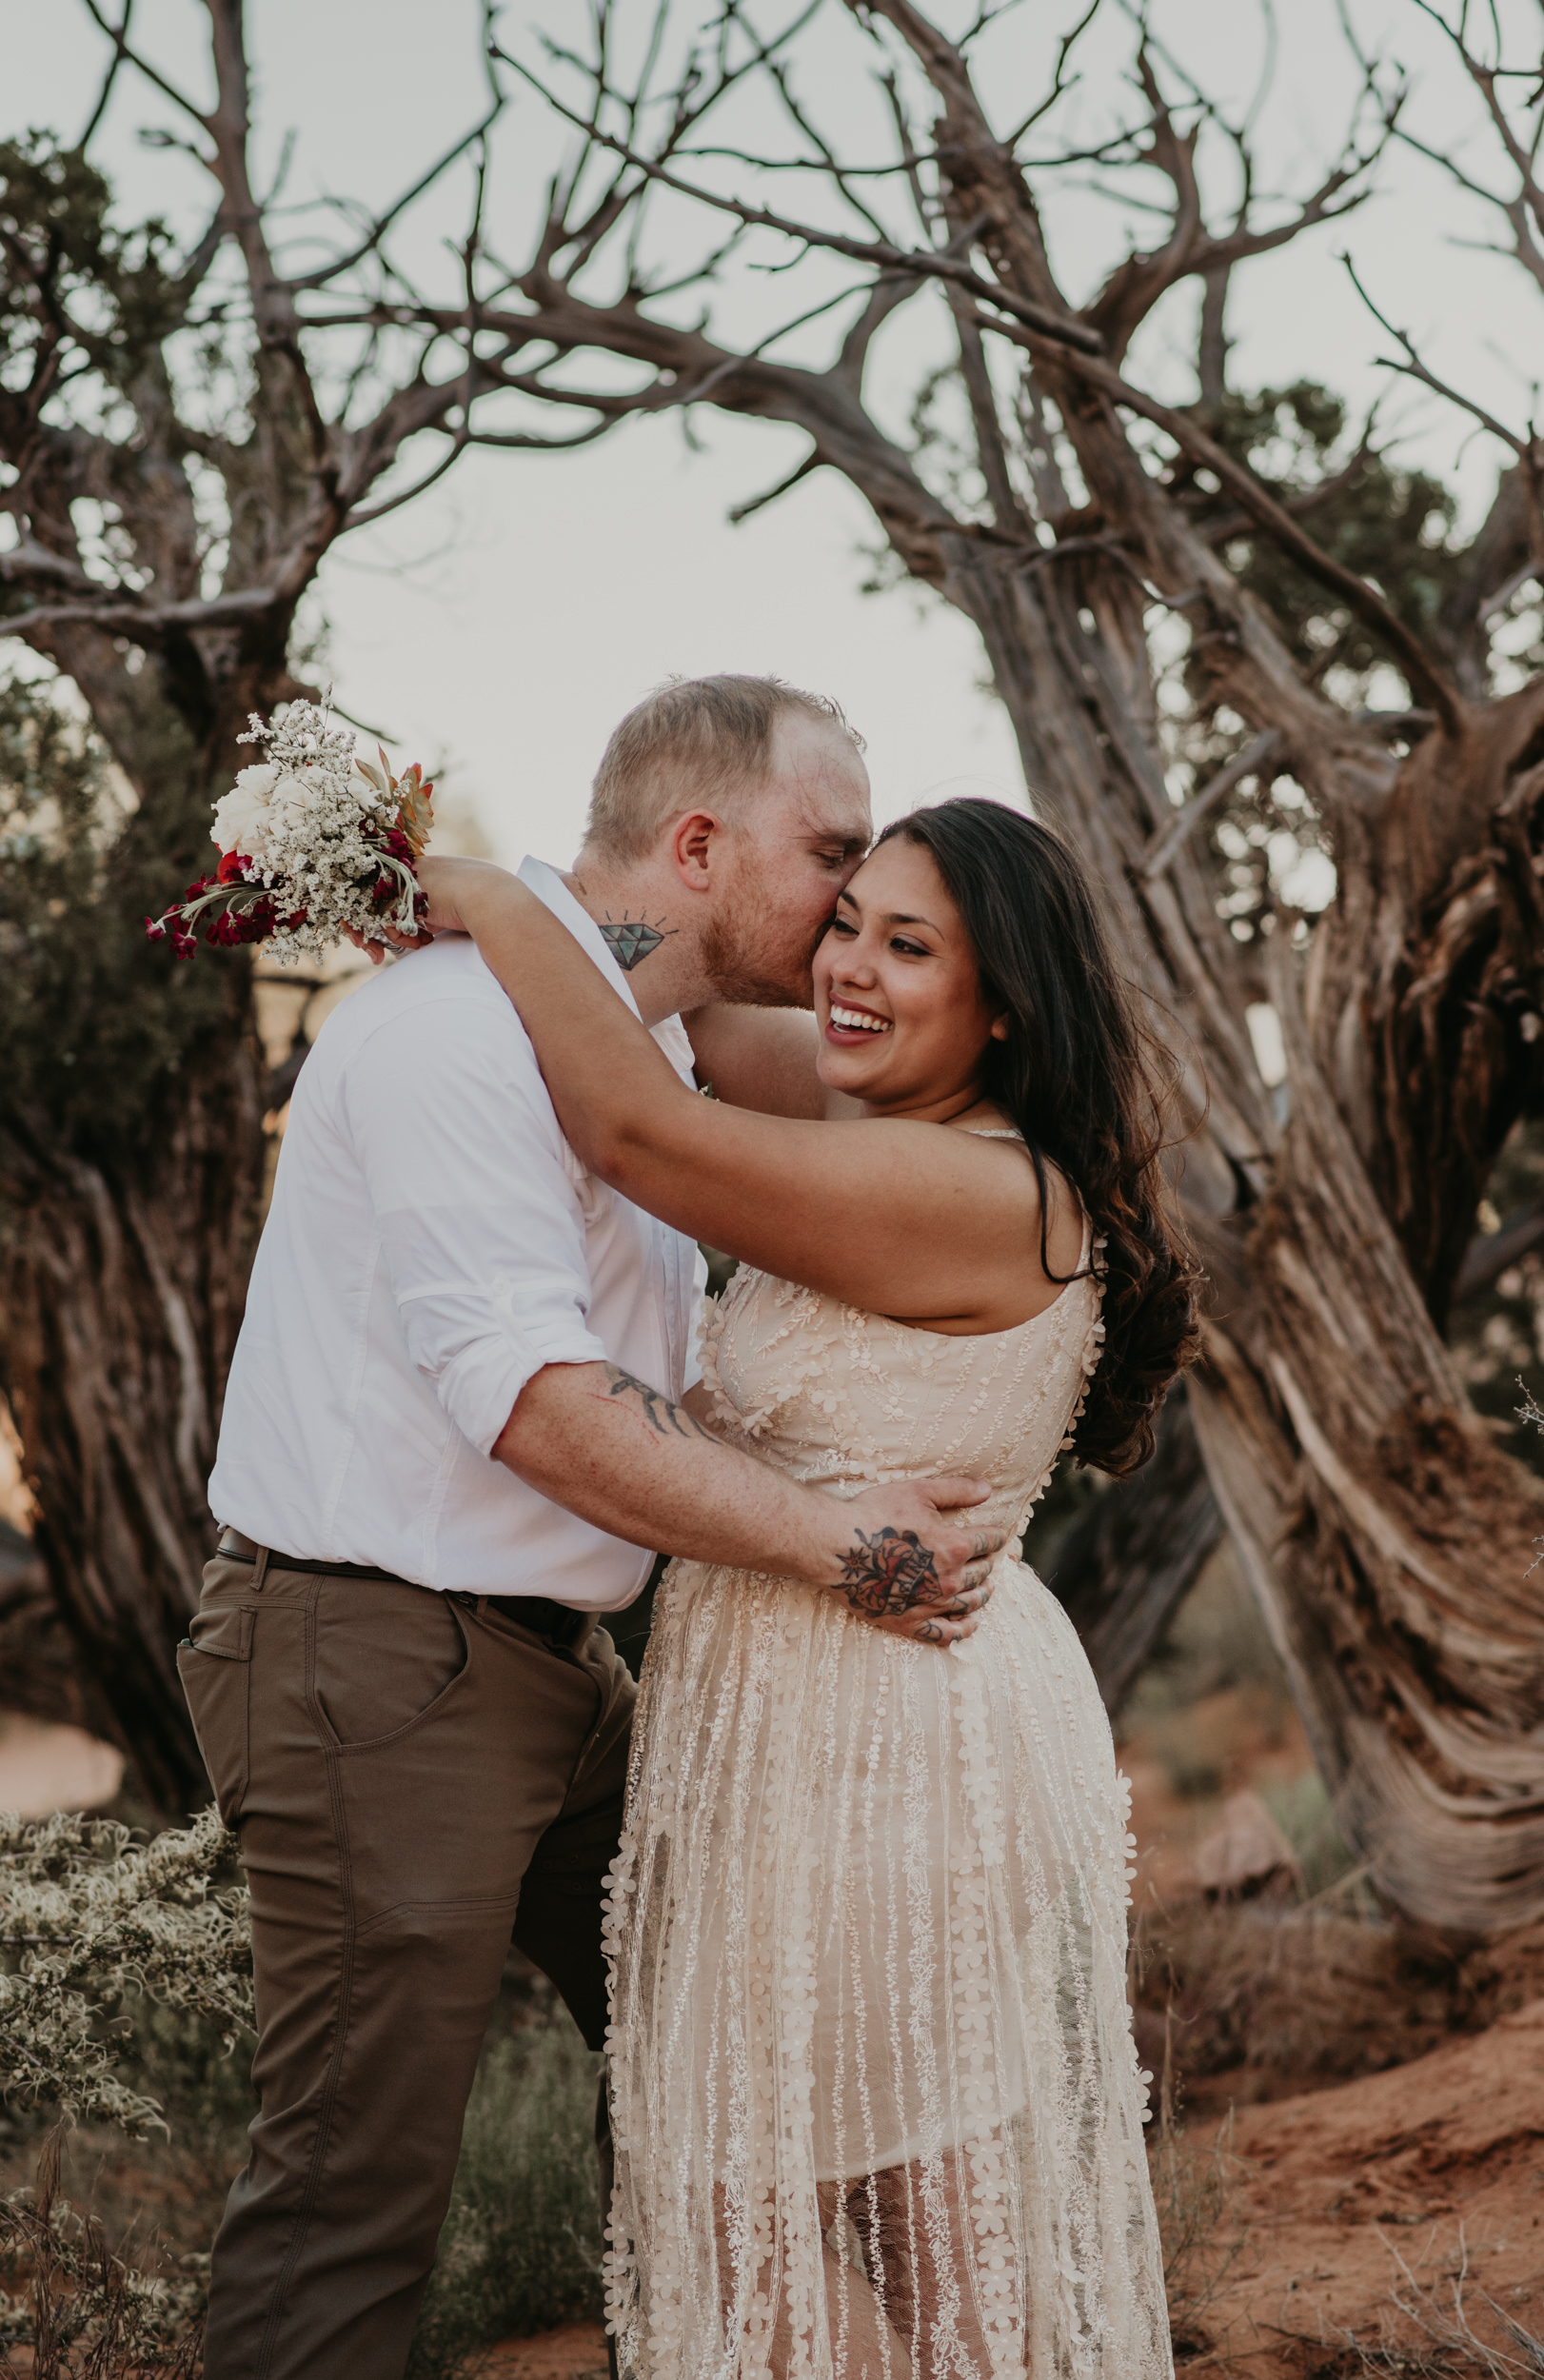 Wedding at the Delicate Arch in Arches National Park